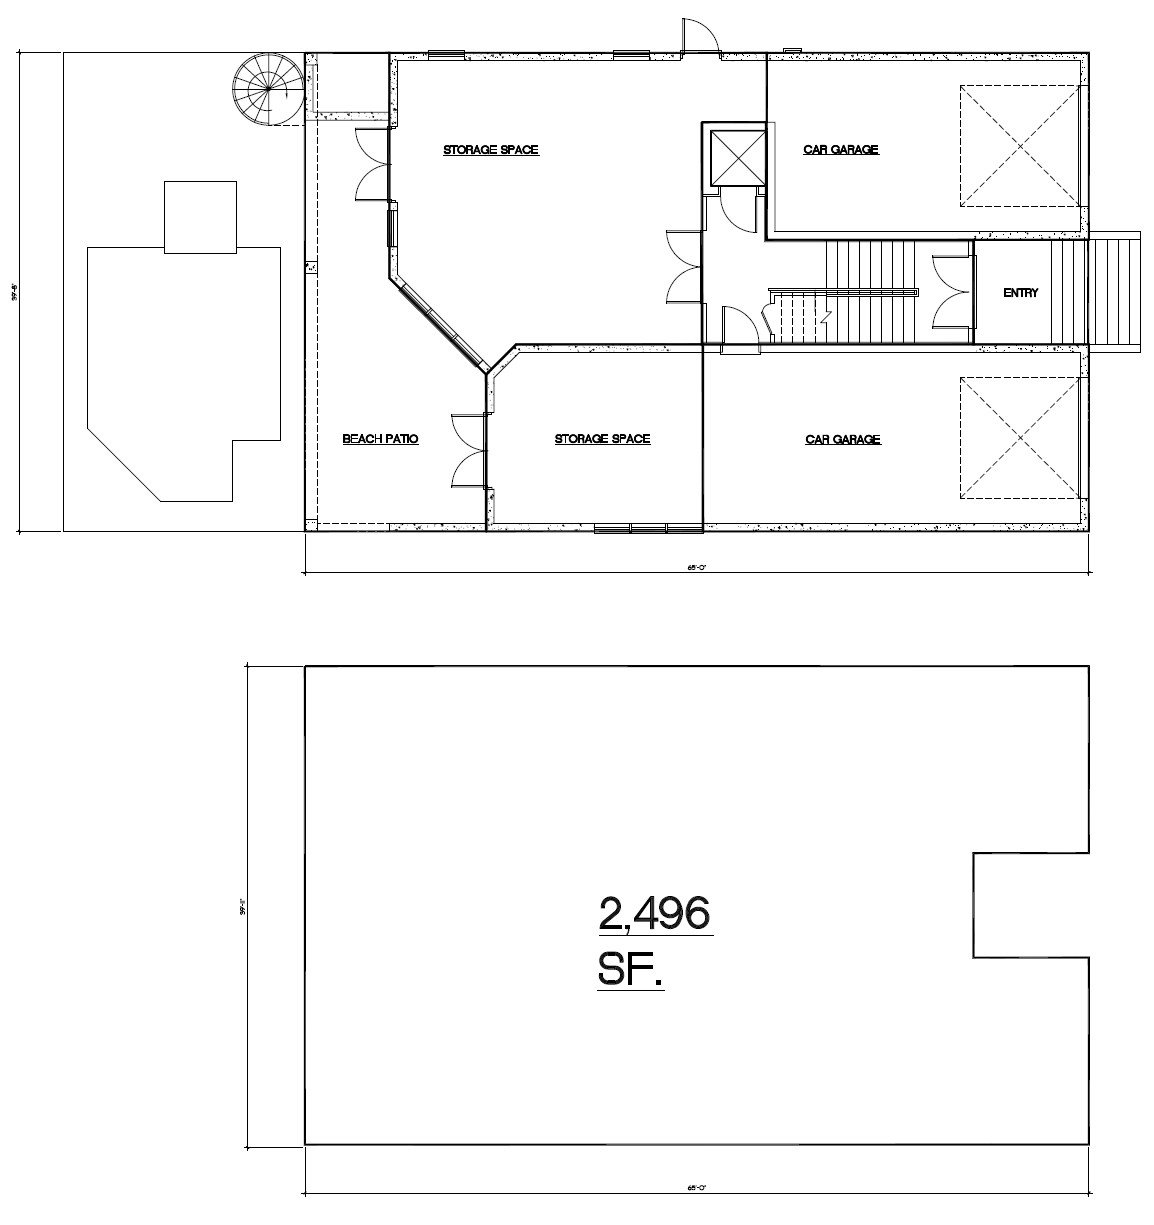 Picture of residential p-line with complete square footage measurements.